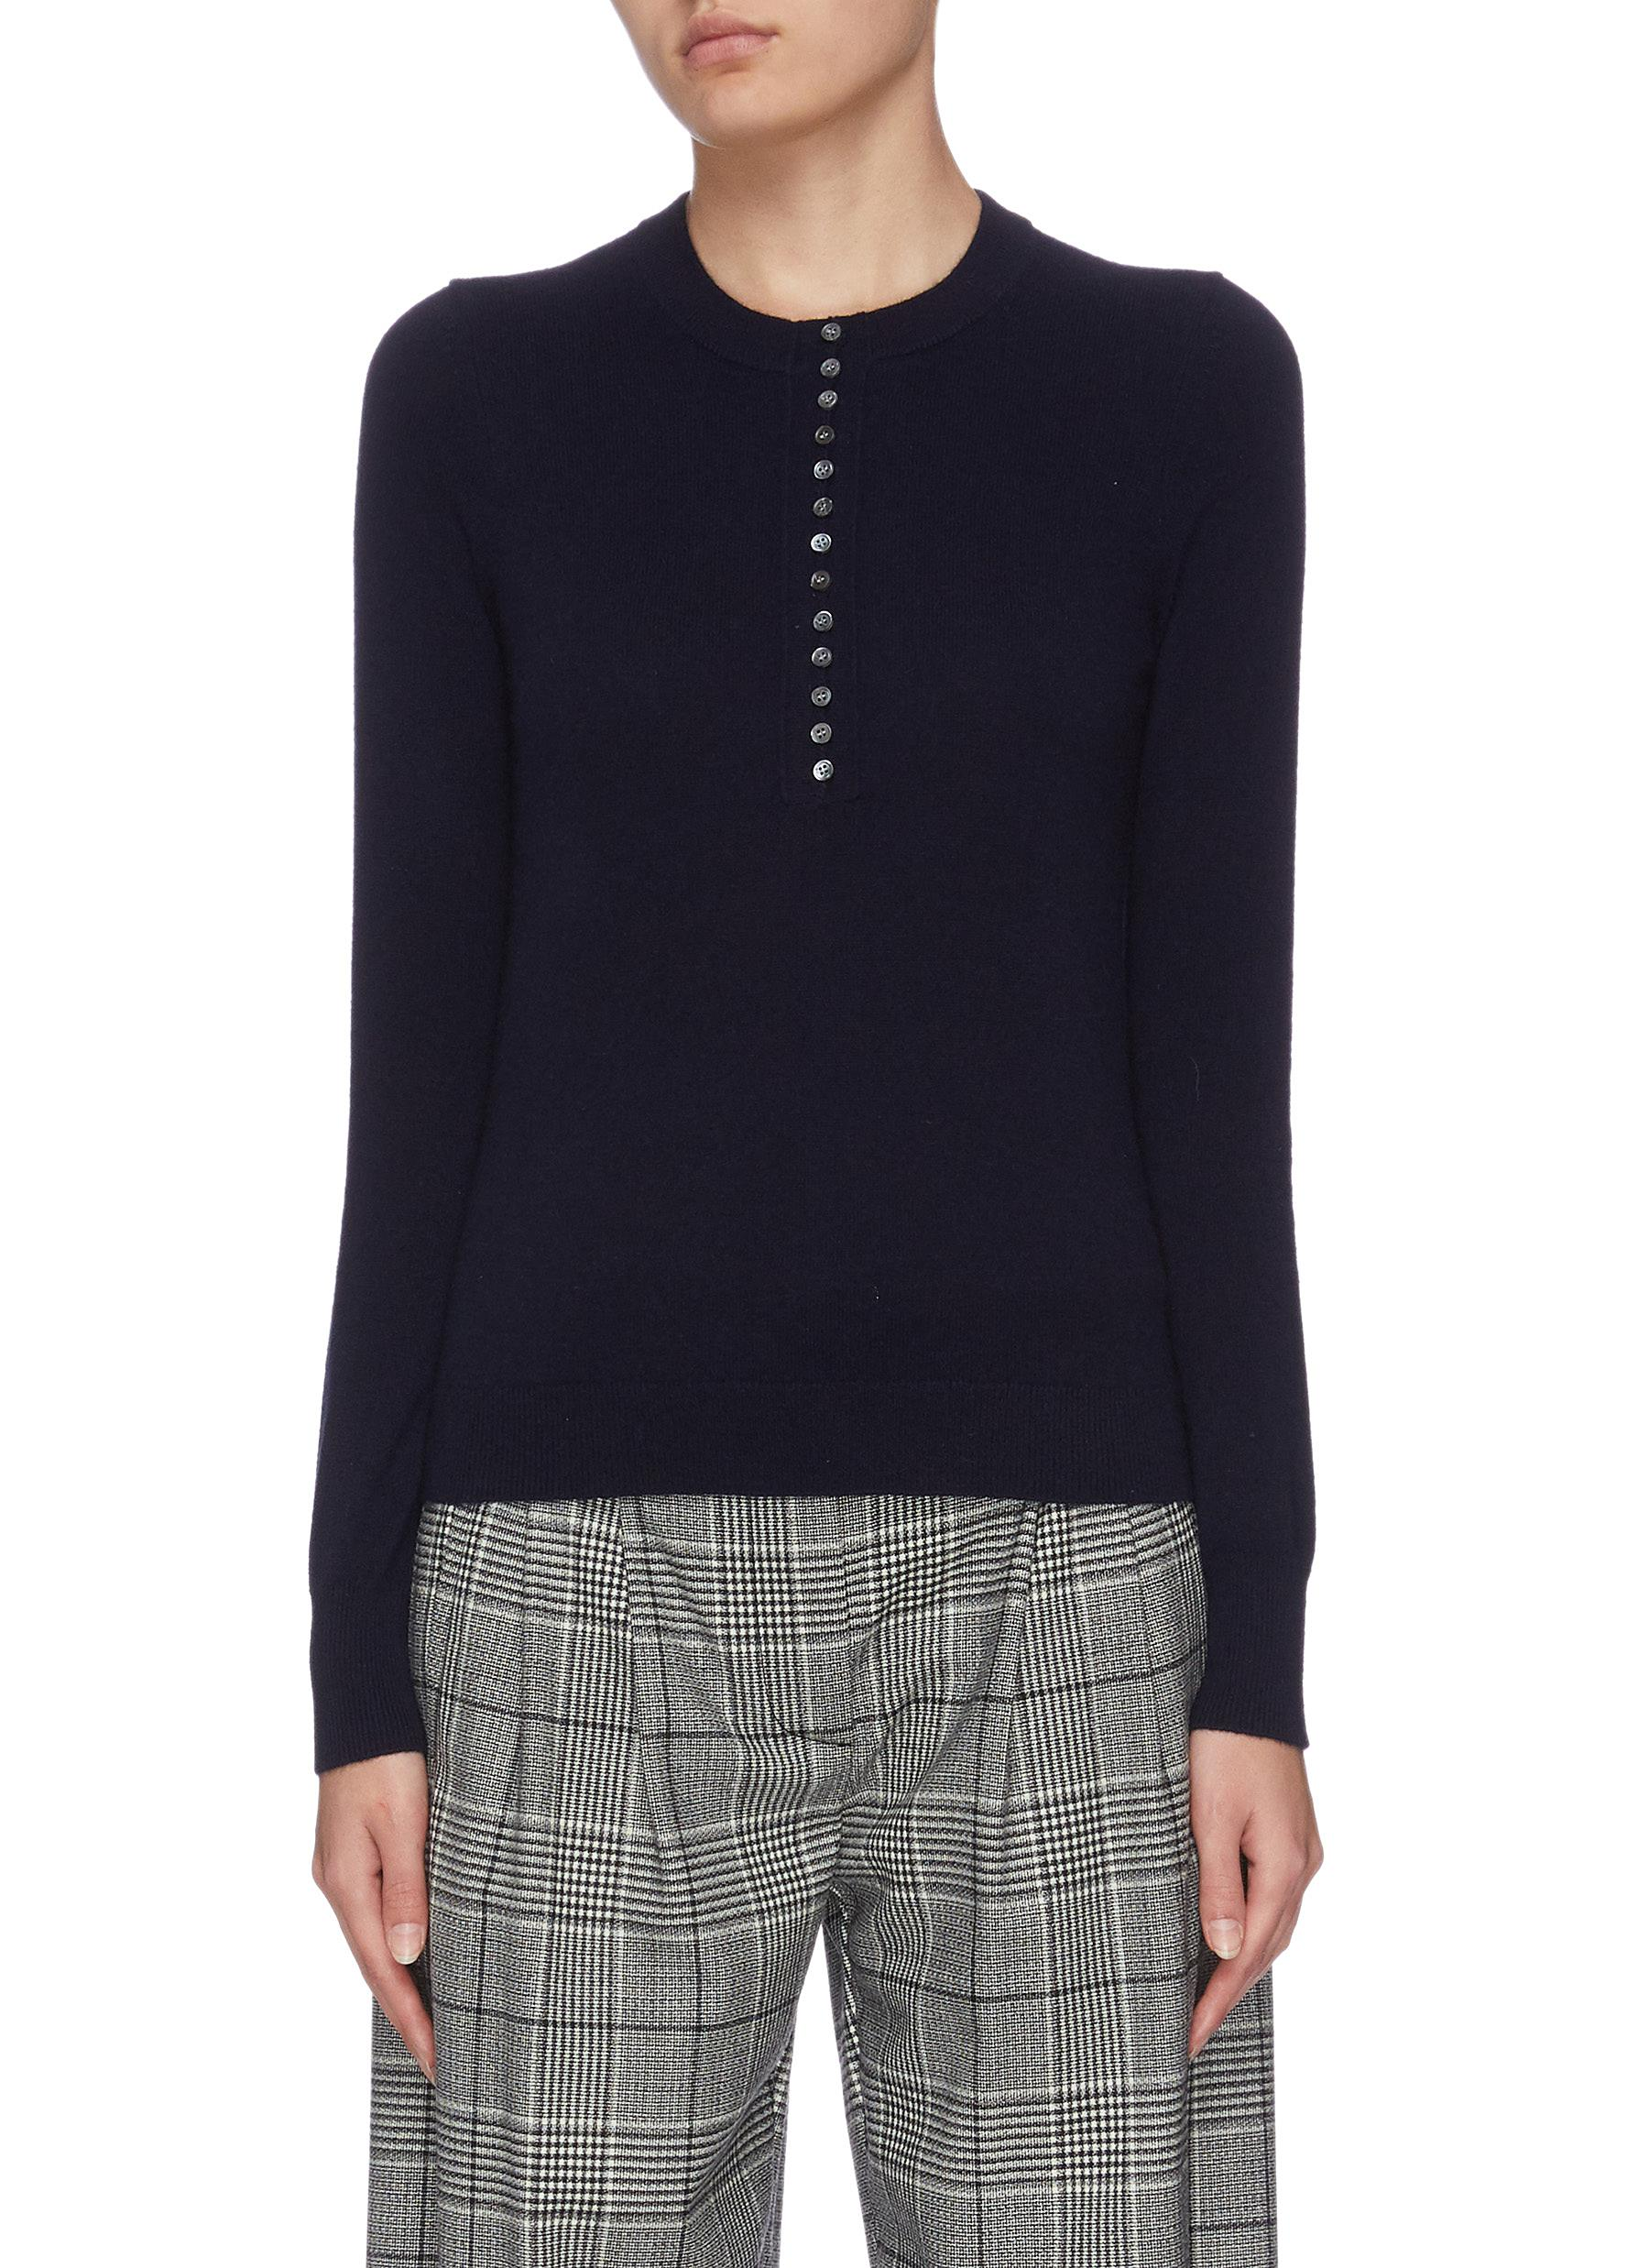 Buy Theory Knitwear 'Henley' button contrast cashmere top